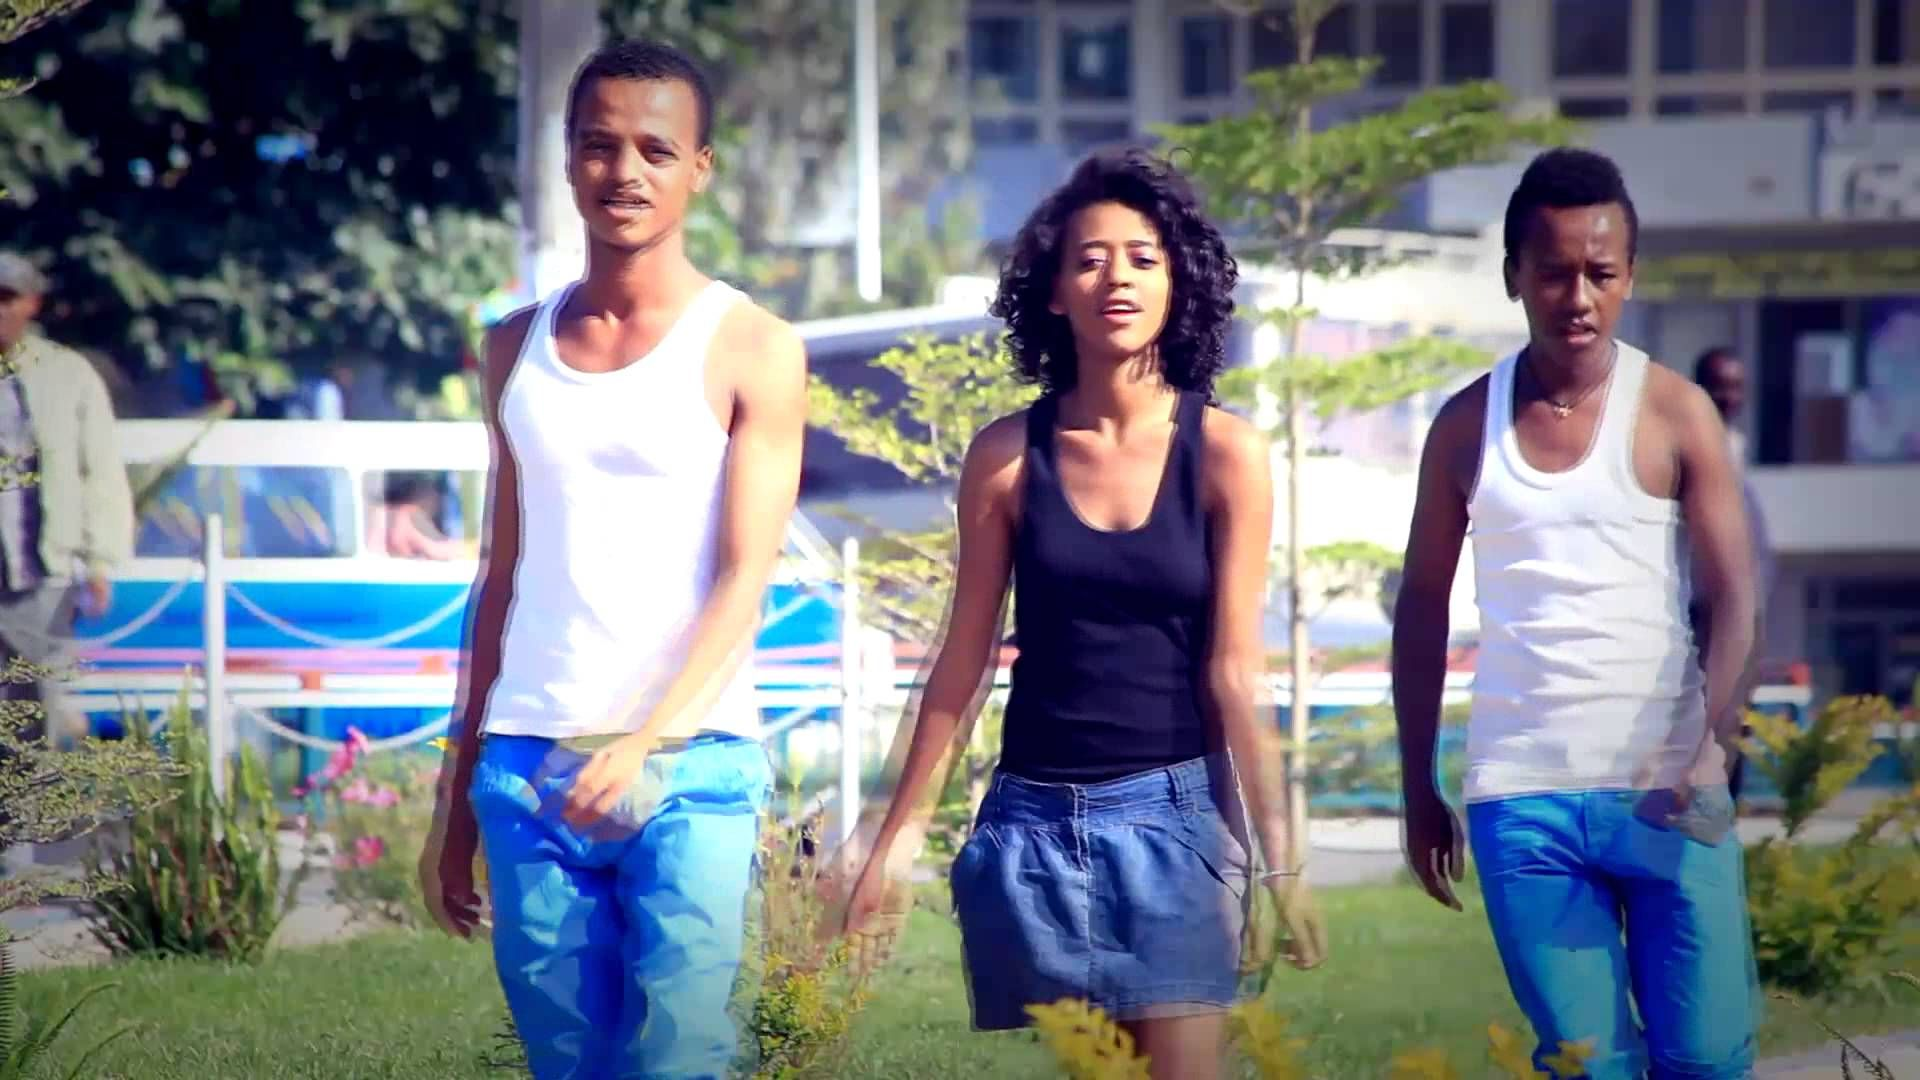 New Oromo (Africa) Music Clip from Oromia by Ifaa Talilaa Caalii